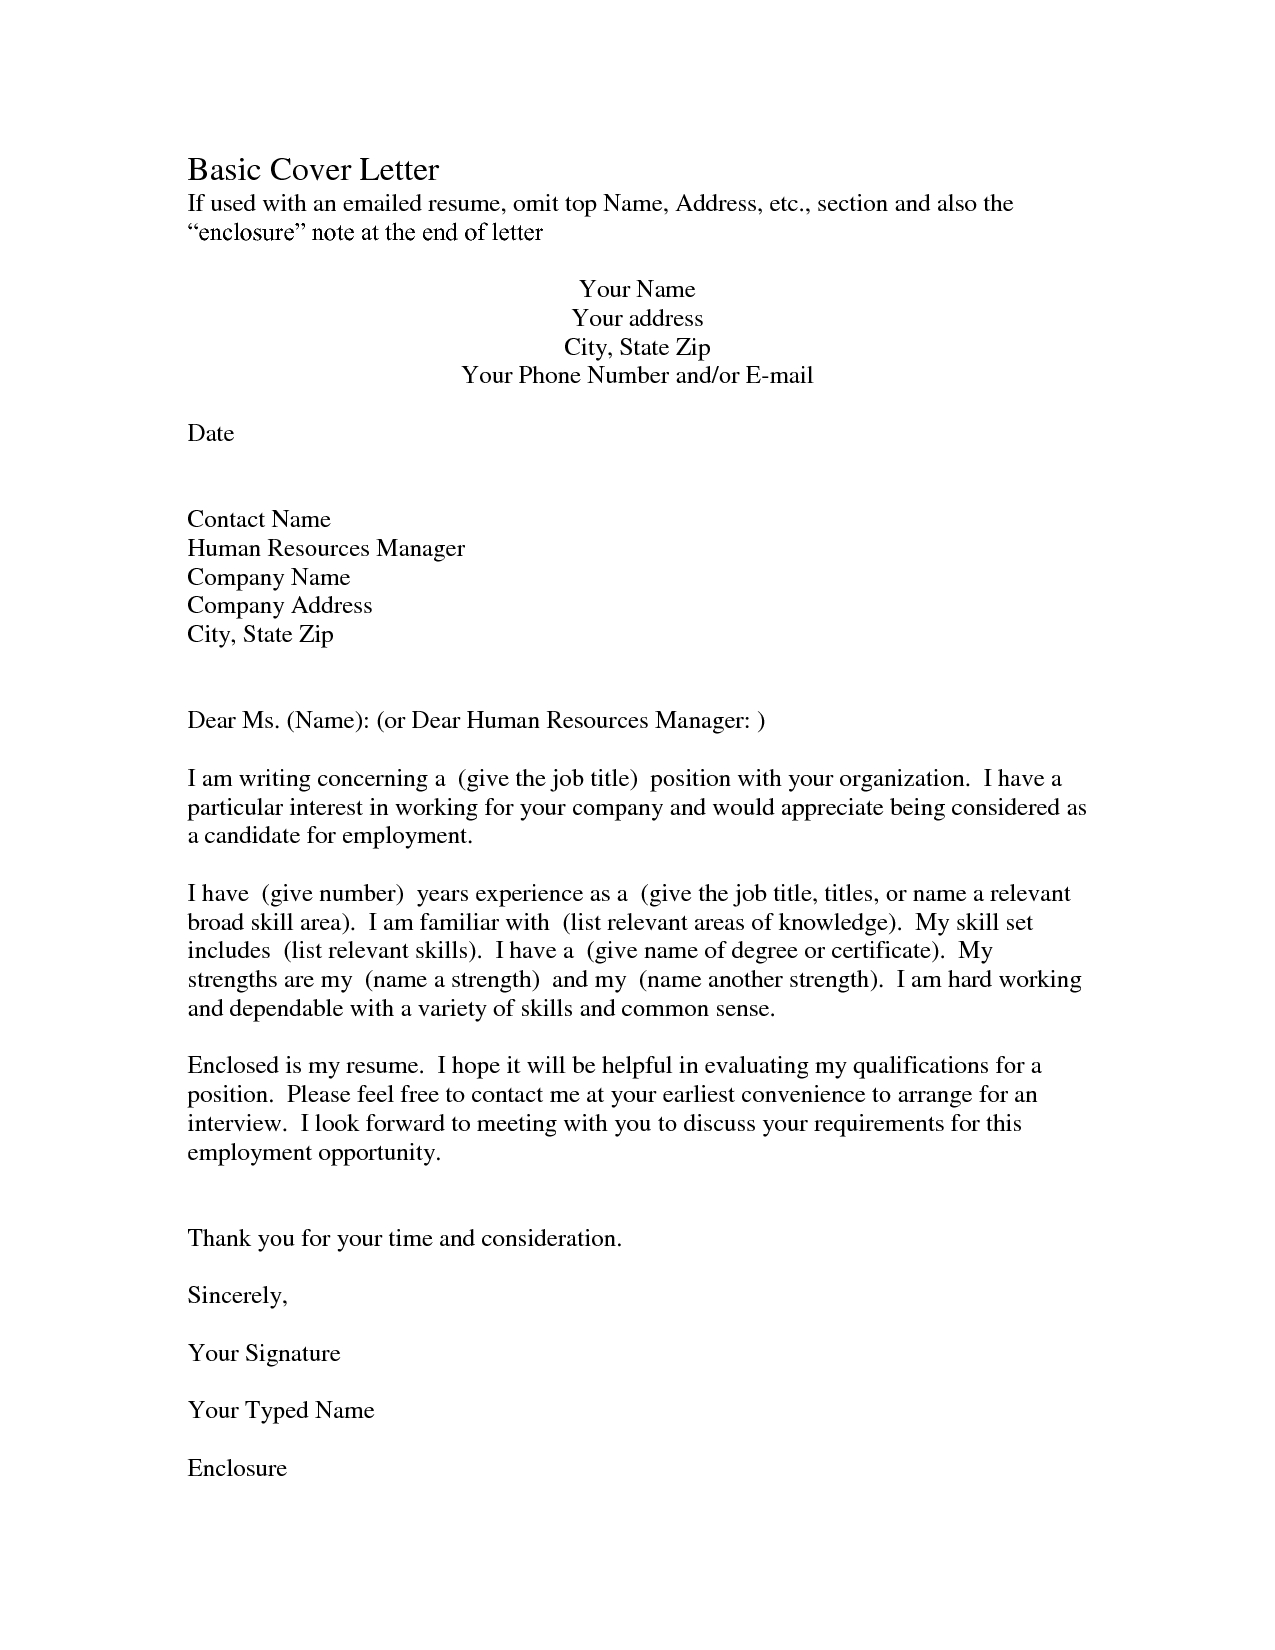 Dental Recall Letter Template - This Cover Letter Sample Shows How A Resumes for Teachers Can Help